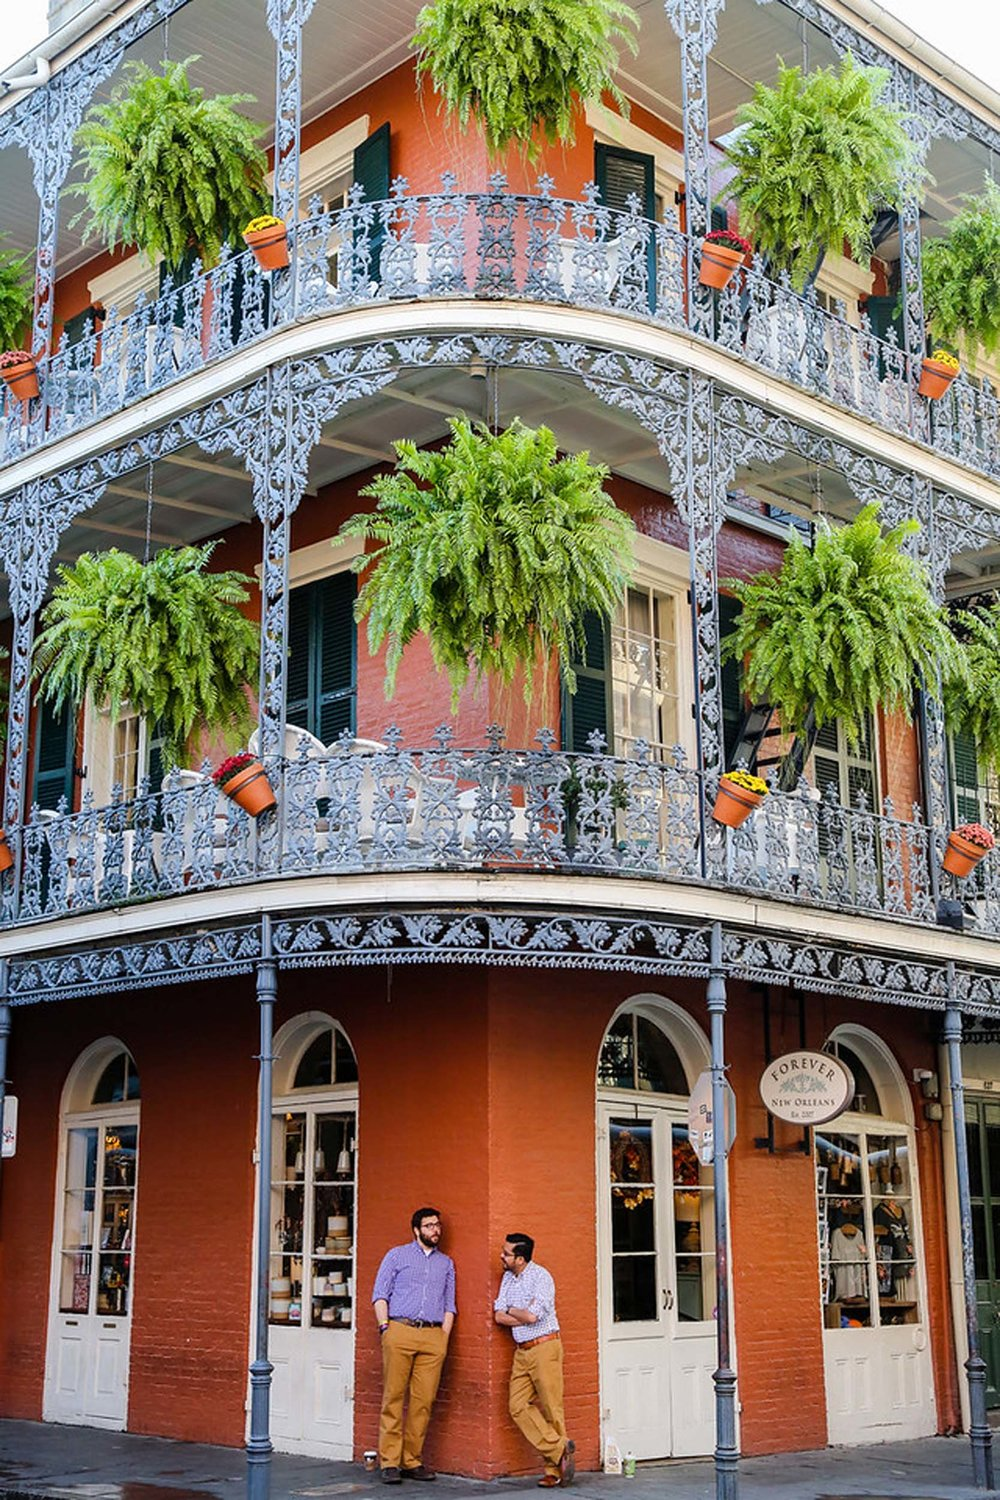 Let The Good Times Roll In True New Orleans Style - New orleans vacations